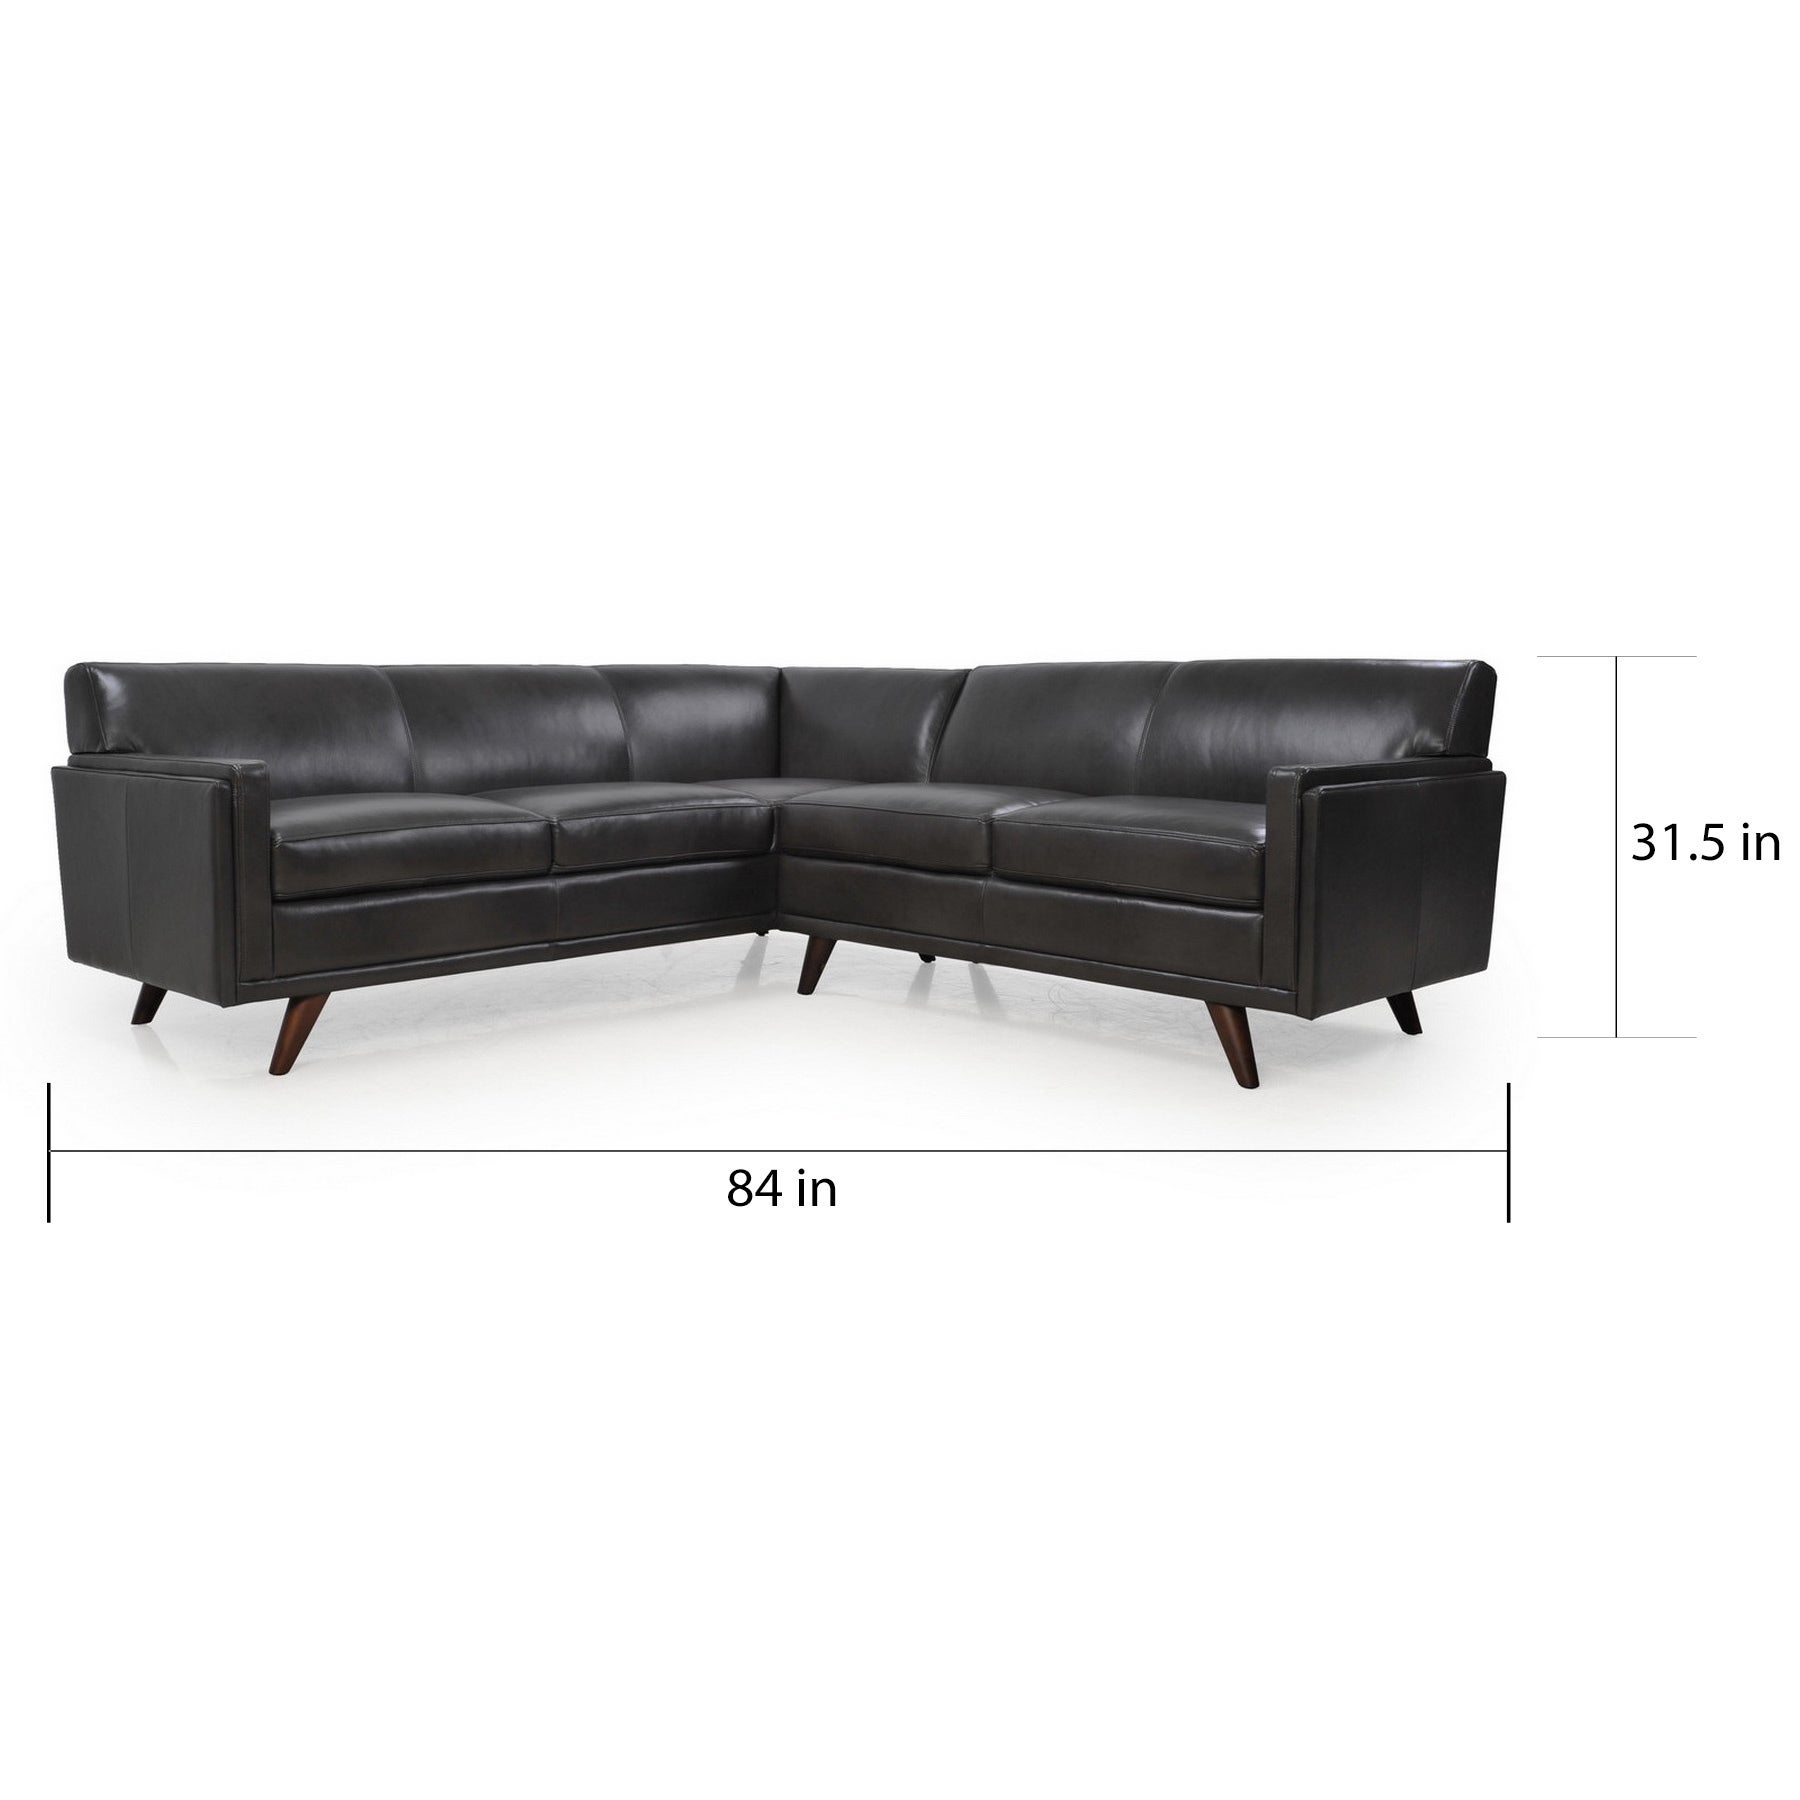 4f214898a5d4 Shop Milo Grey Full Leather Mid-Century Sectional Sofa - Free Shipping  Today - Overstock - 12861290